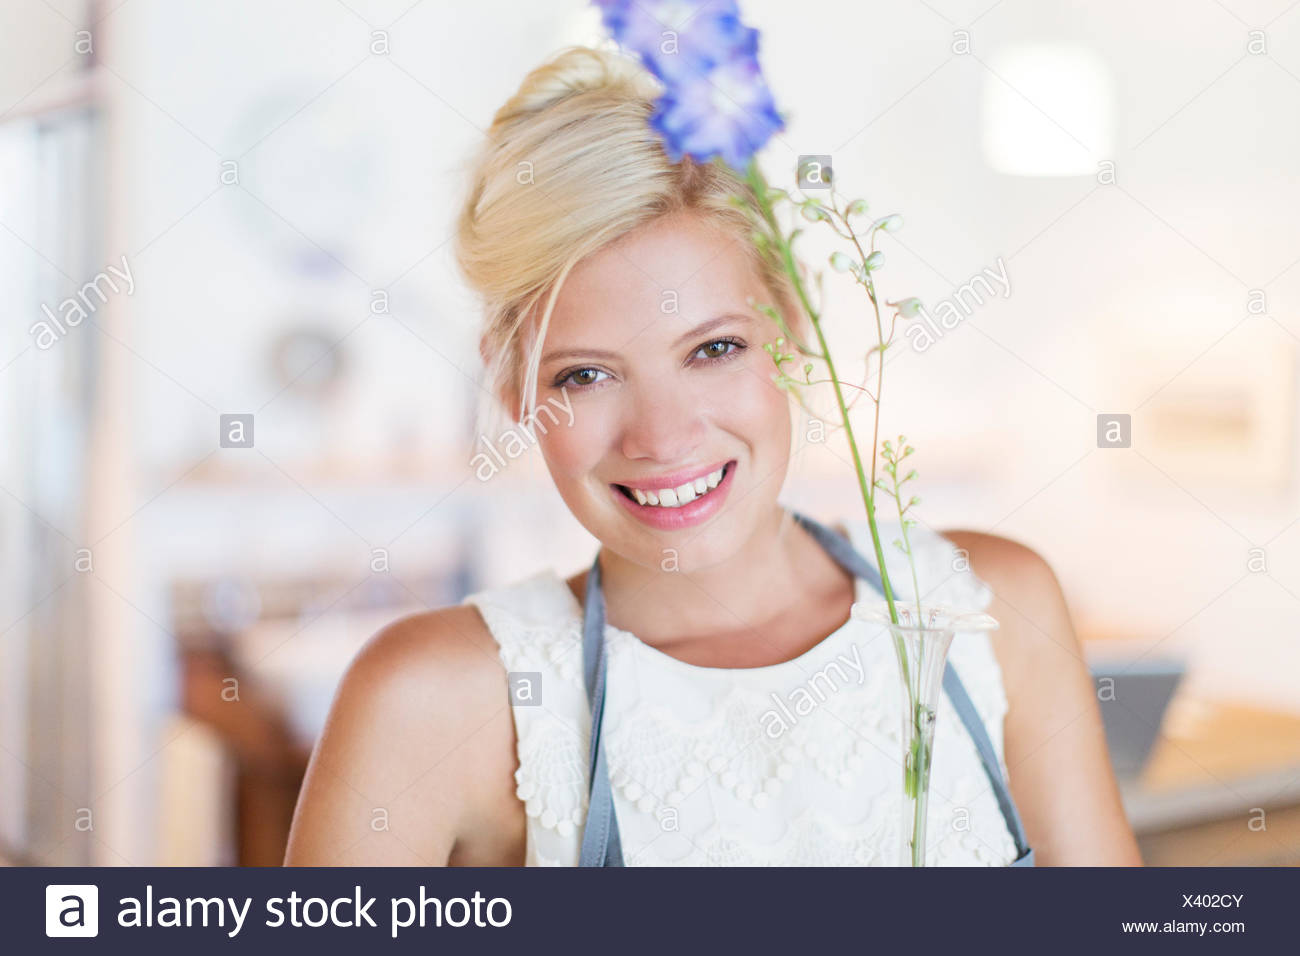 Woman holding flower in rustic kitchen - Stock Image